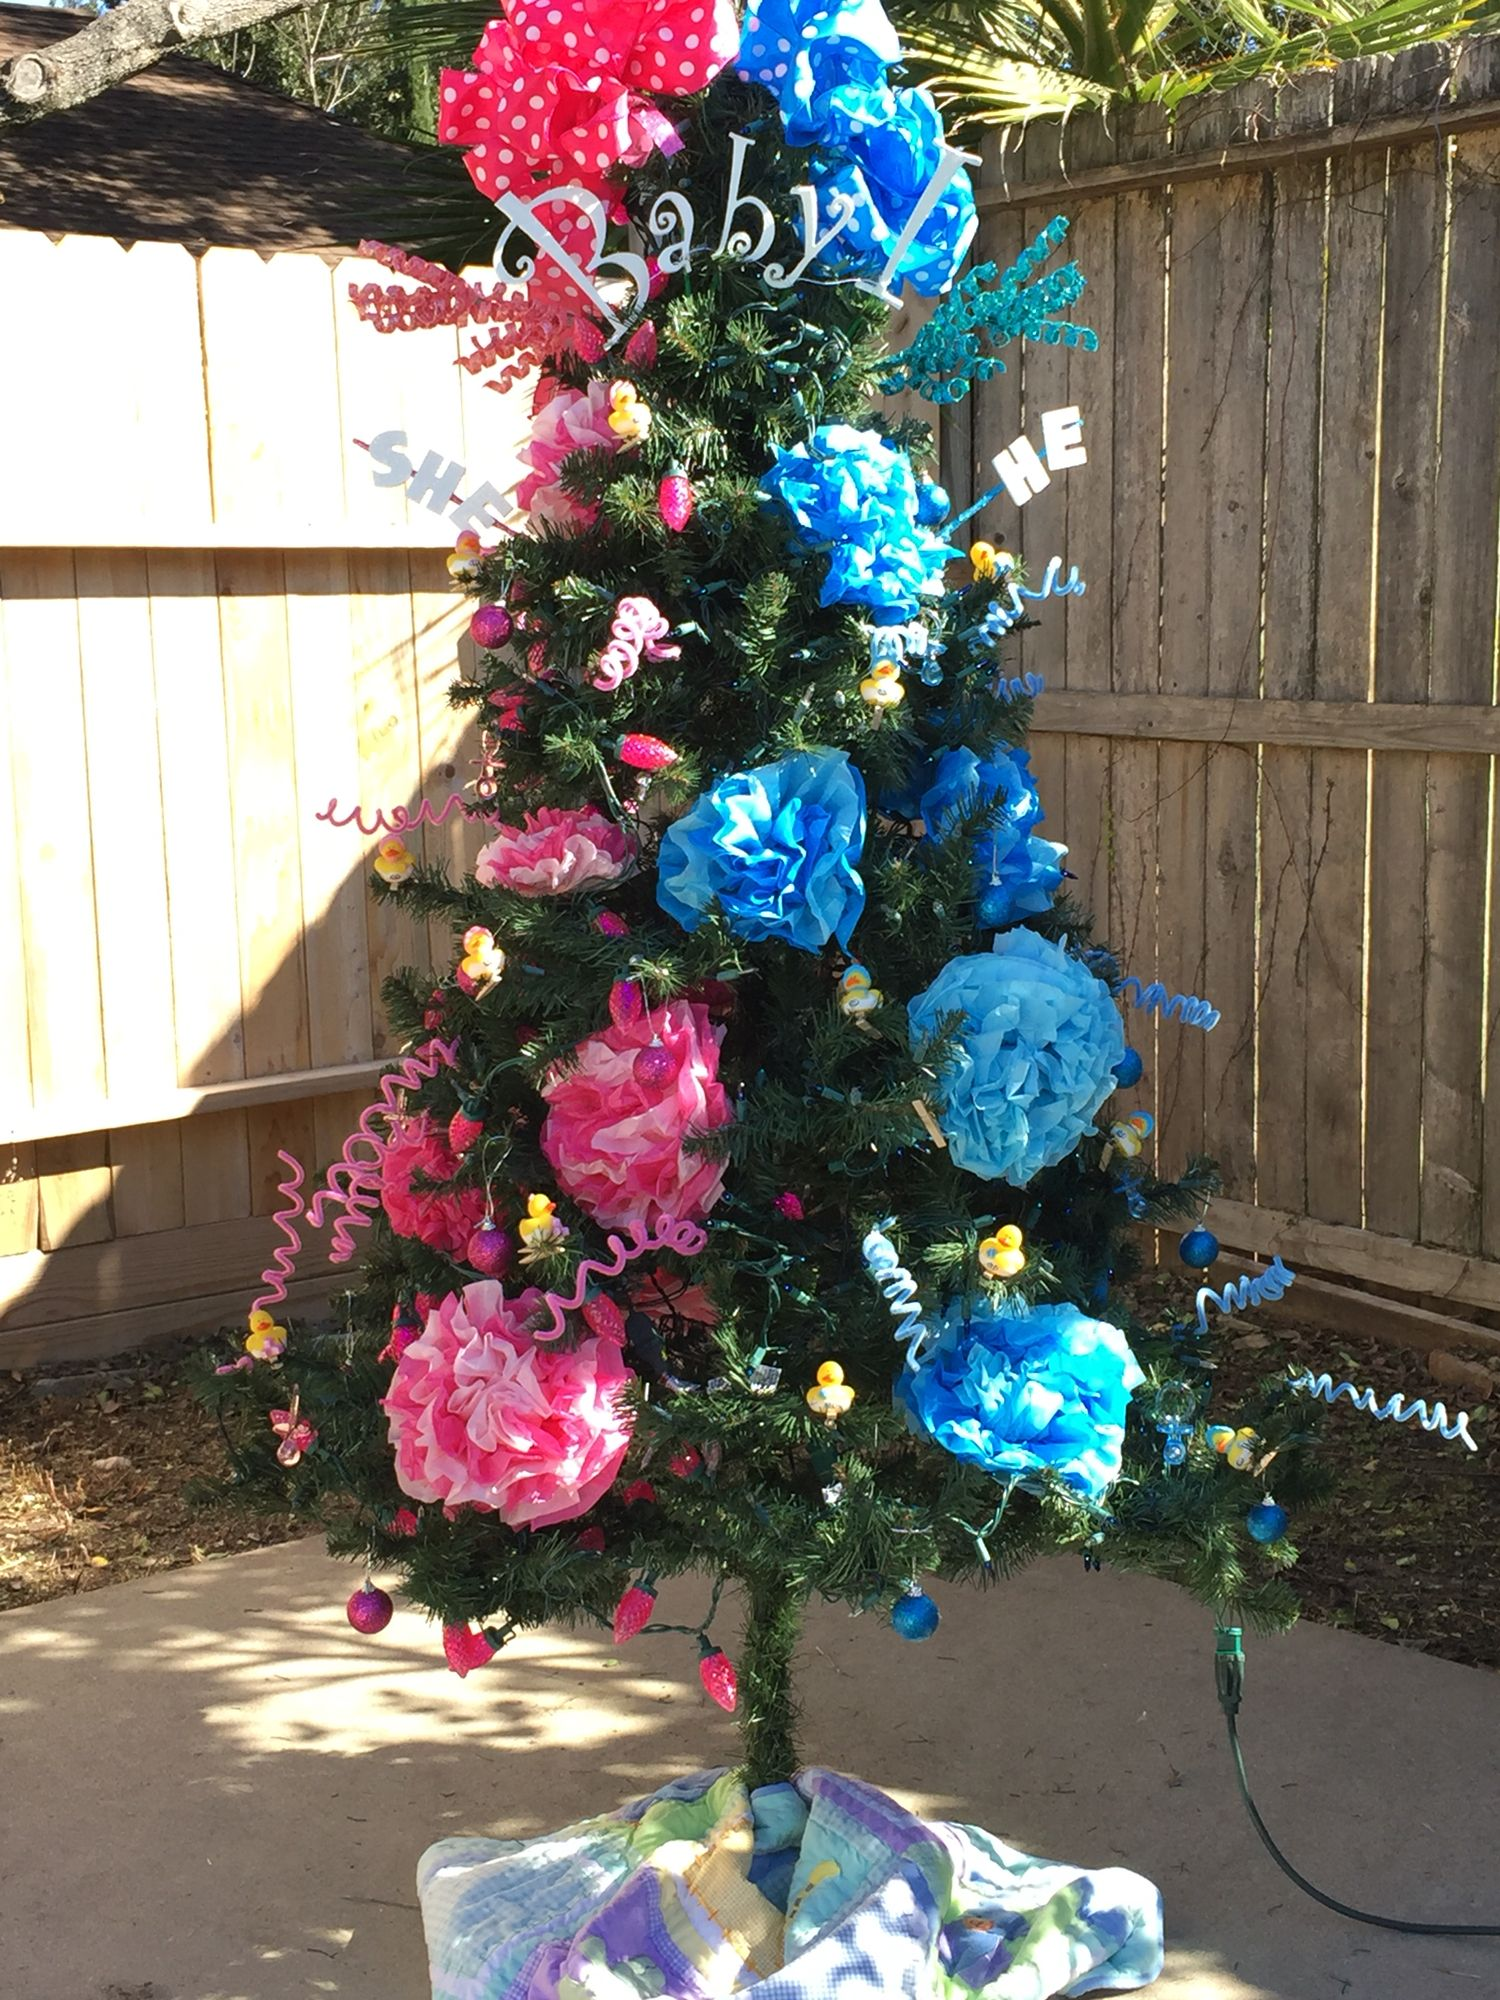 Christmas Gender Reveal Ideas.Baby Gender Reveal Christmas Ideas Year Of Clean Water